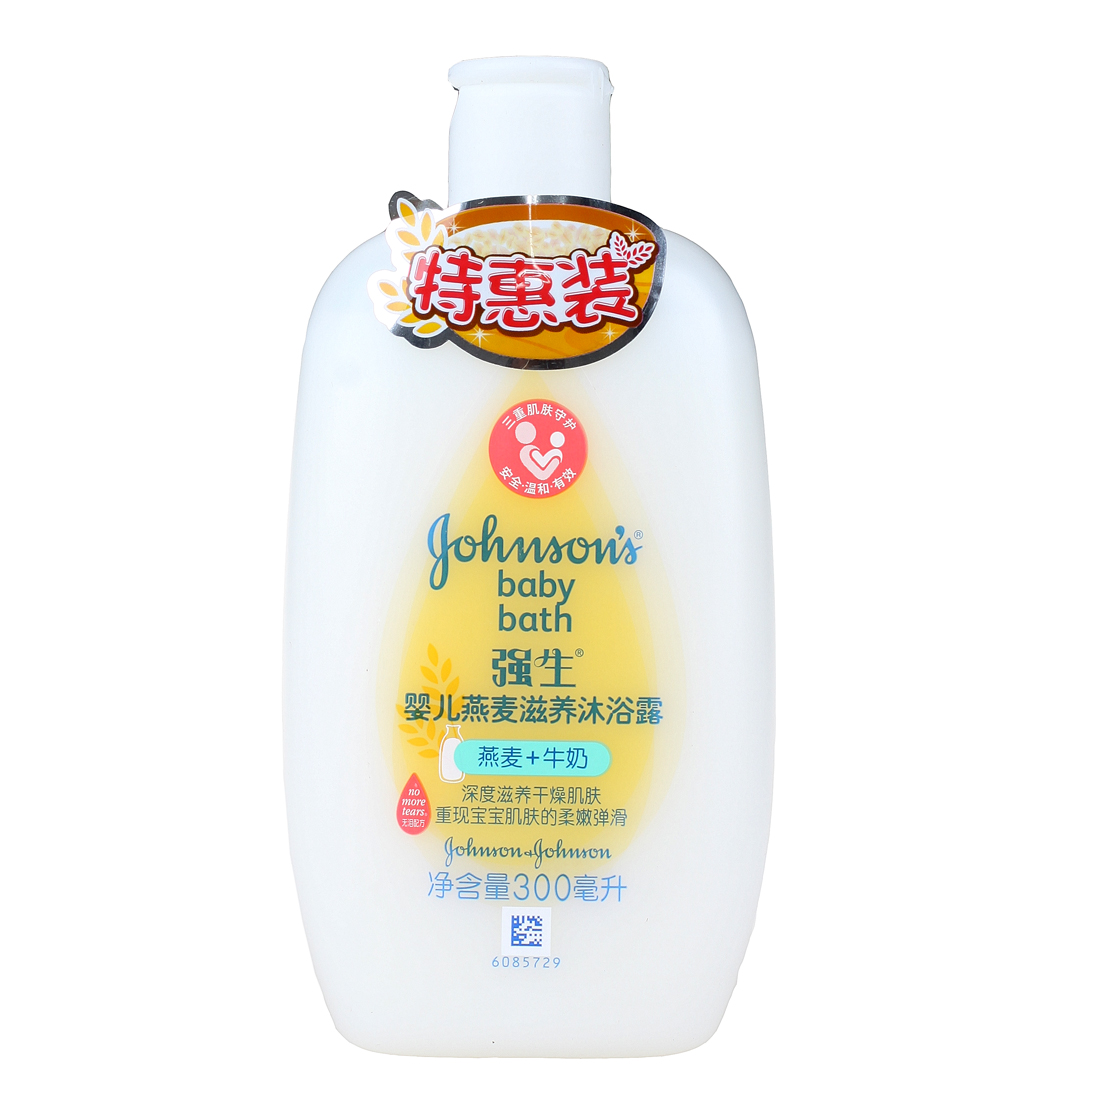 Johnson's baby oats nourish shower gel 300 ml baby milk + oat milk bath moisturizing